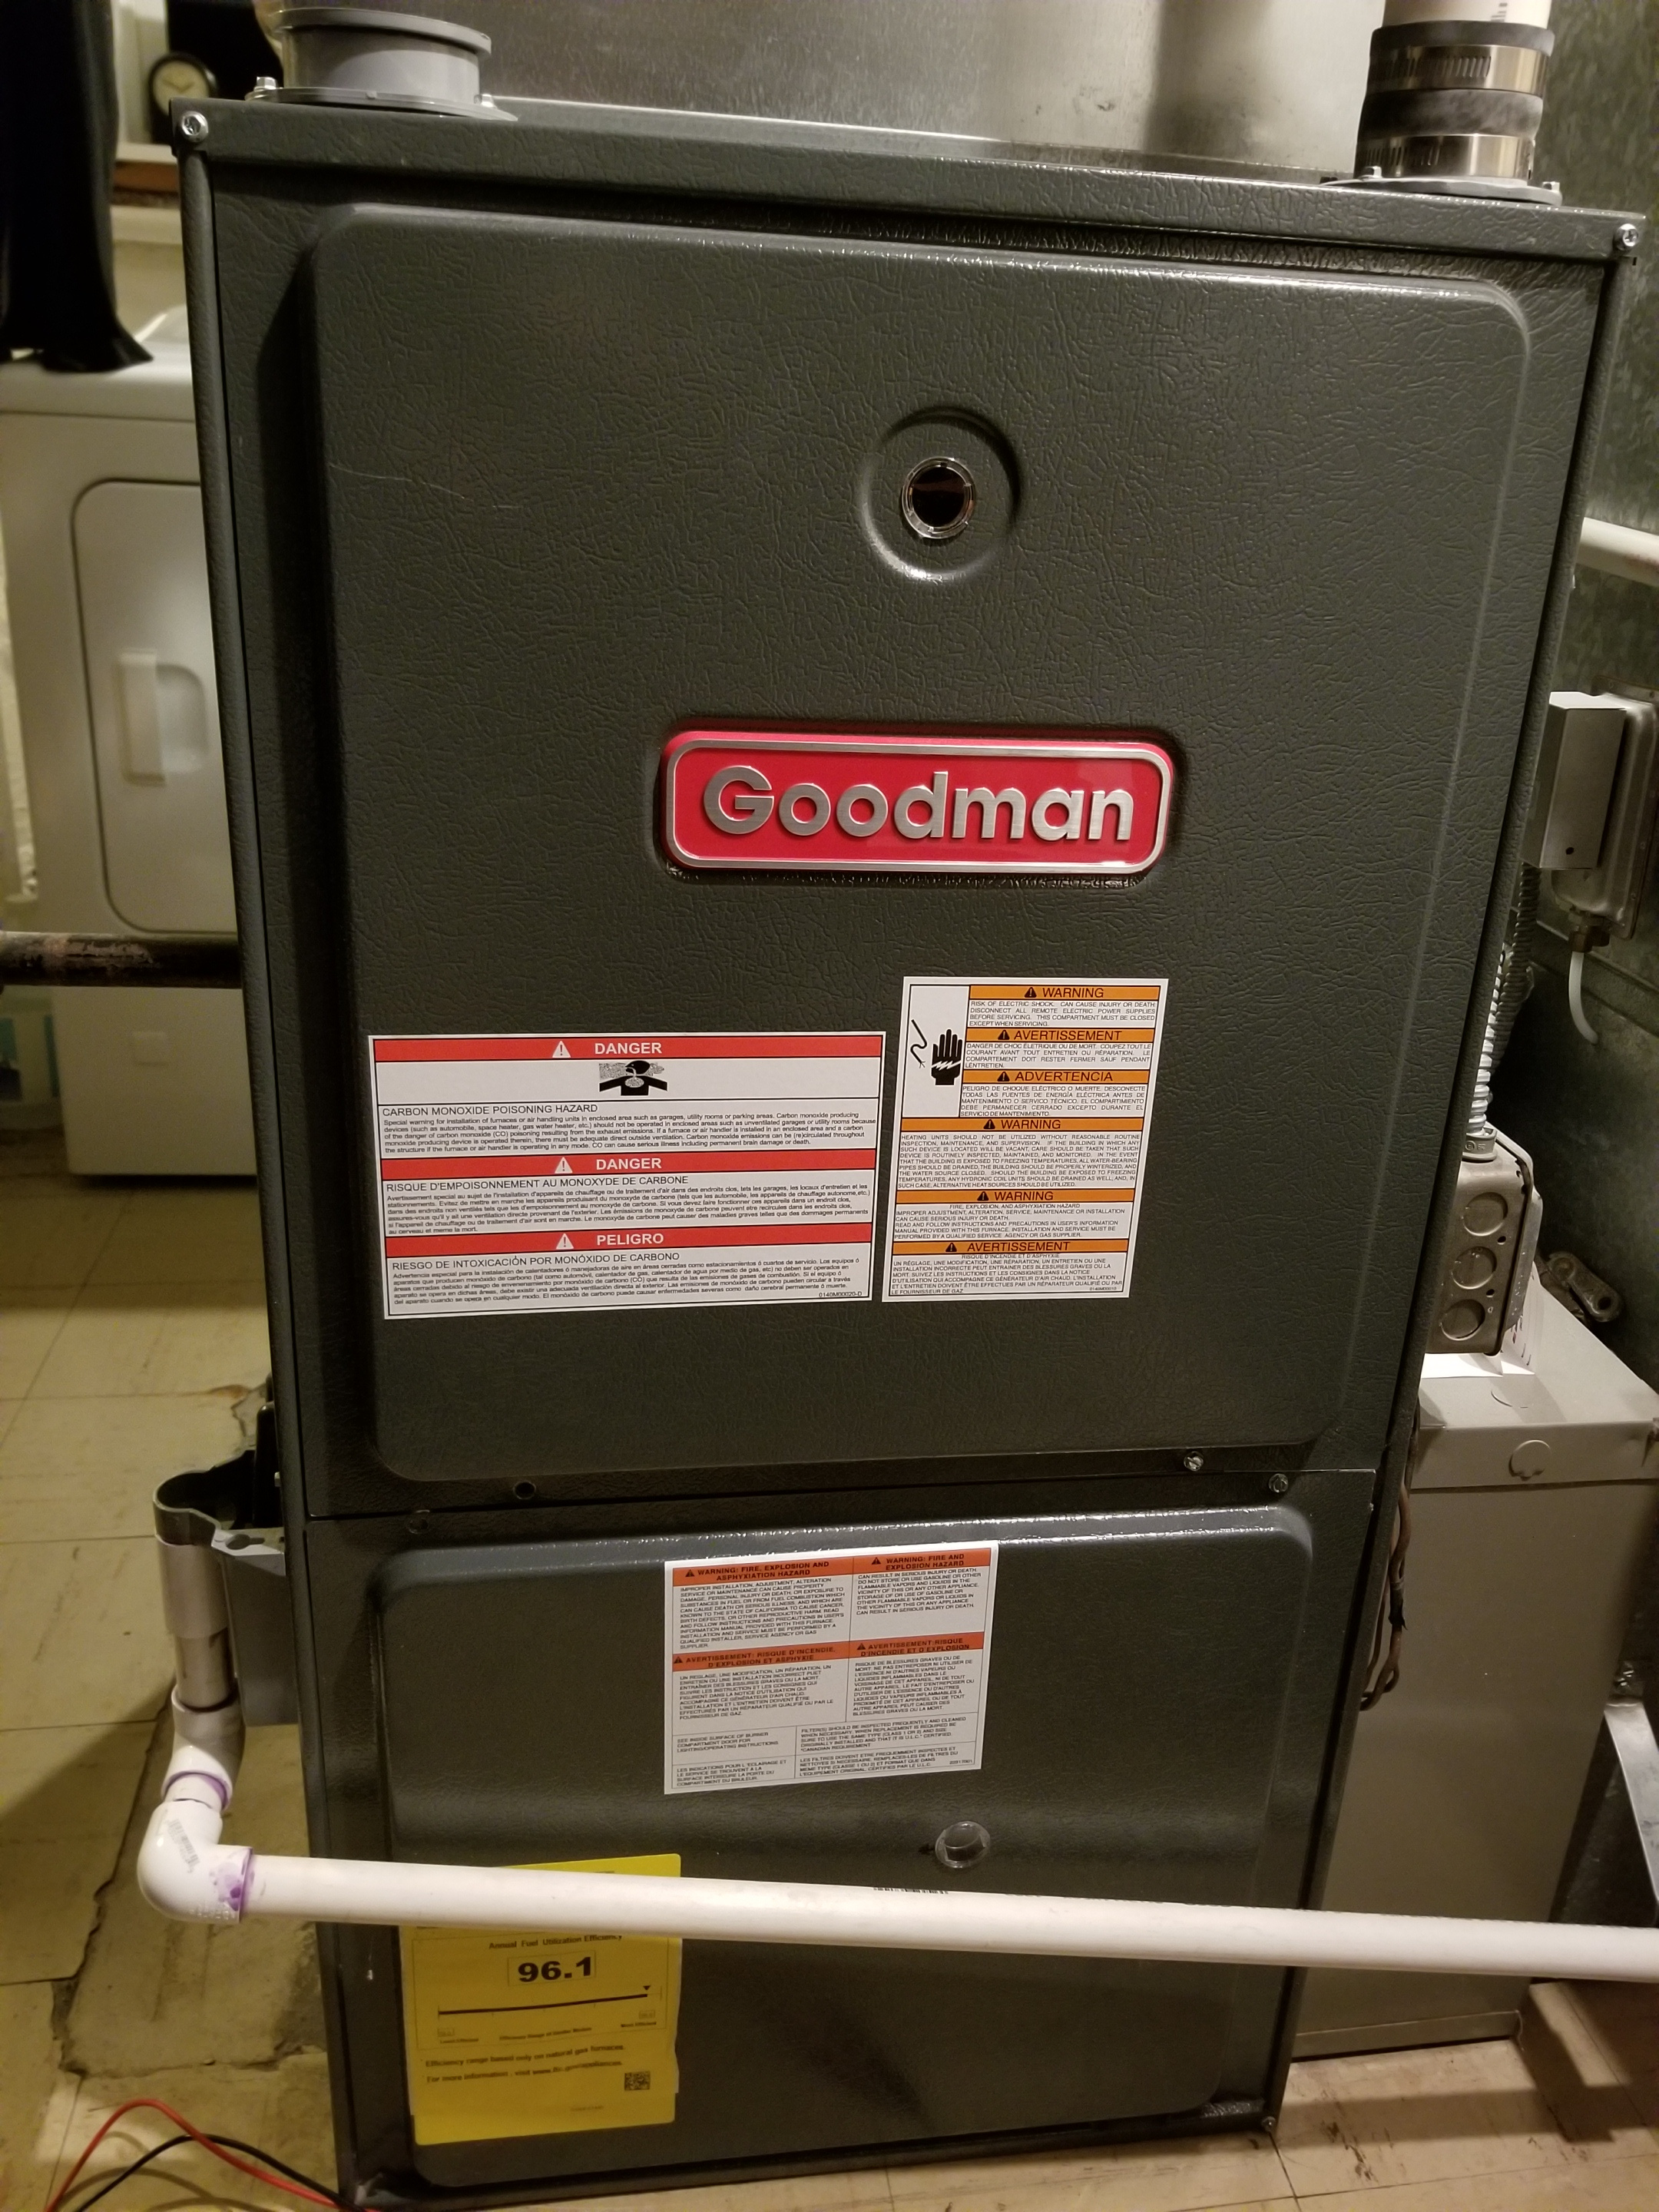 Repaired the Goodman furnace and made adjustments to improve the overall efficiency and life expectancy of the equipment